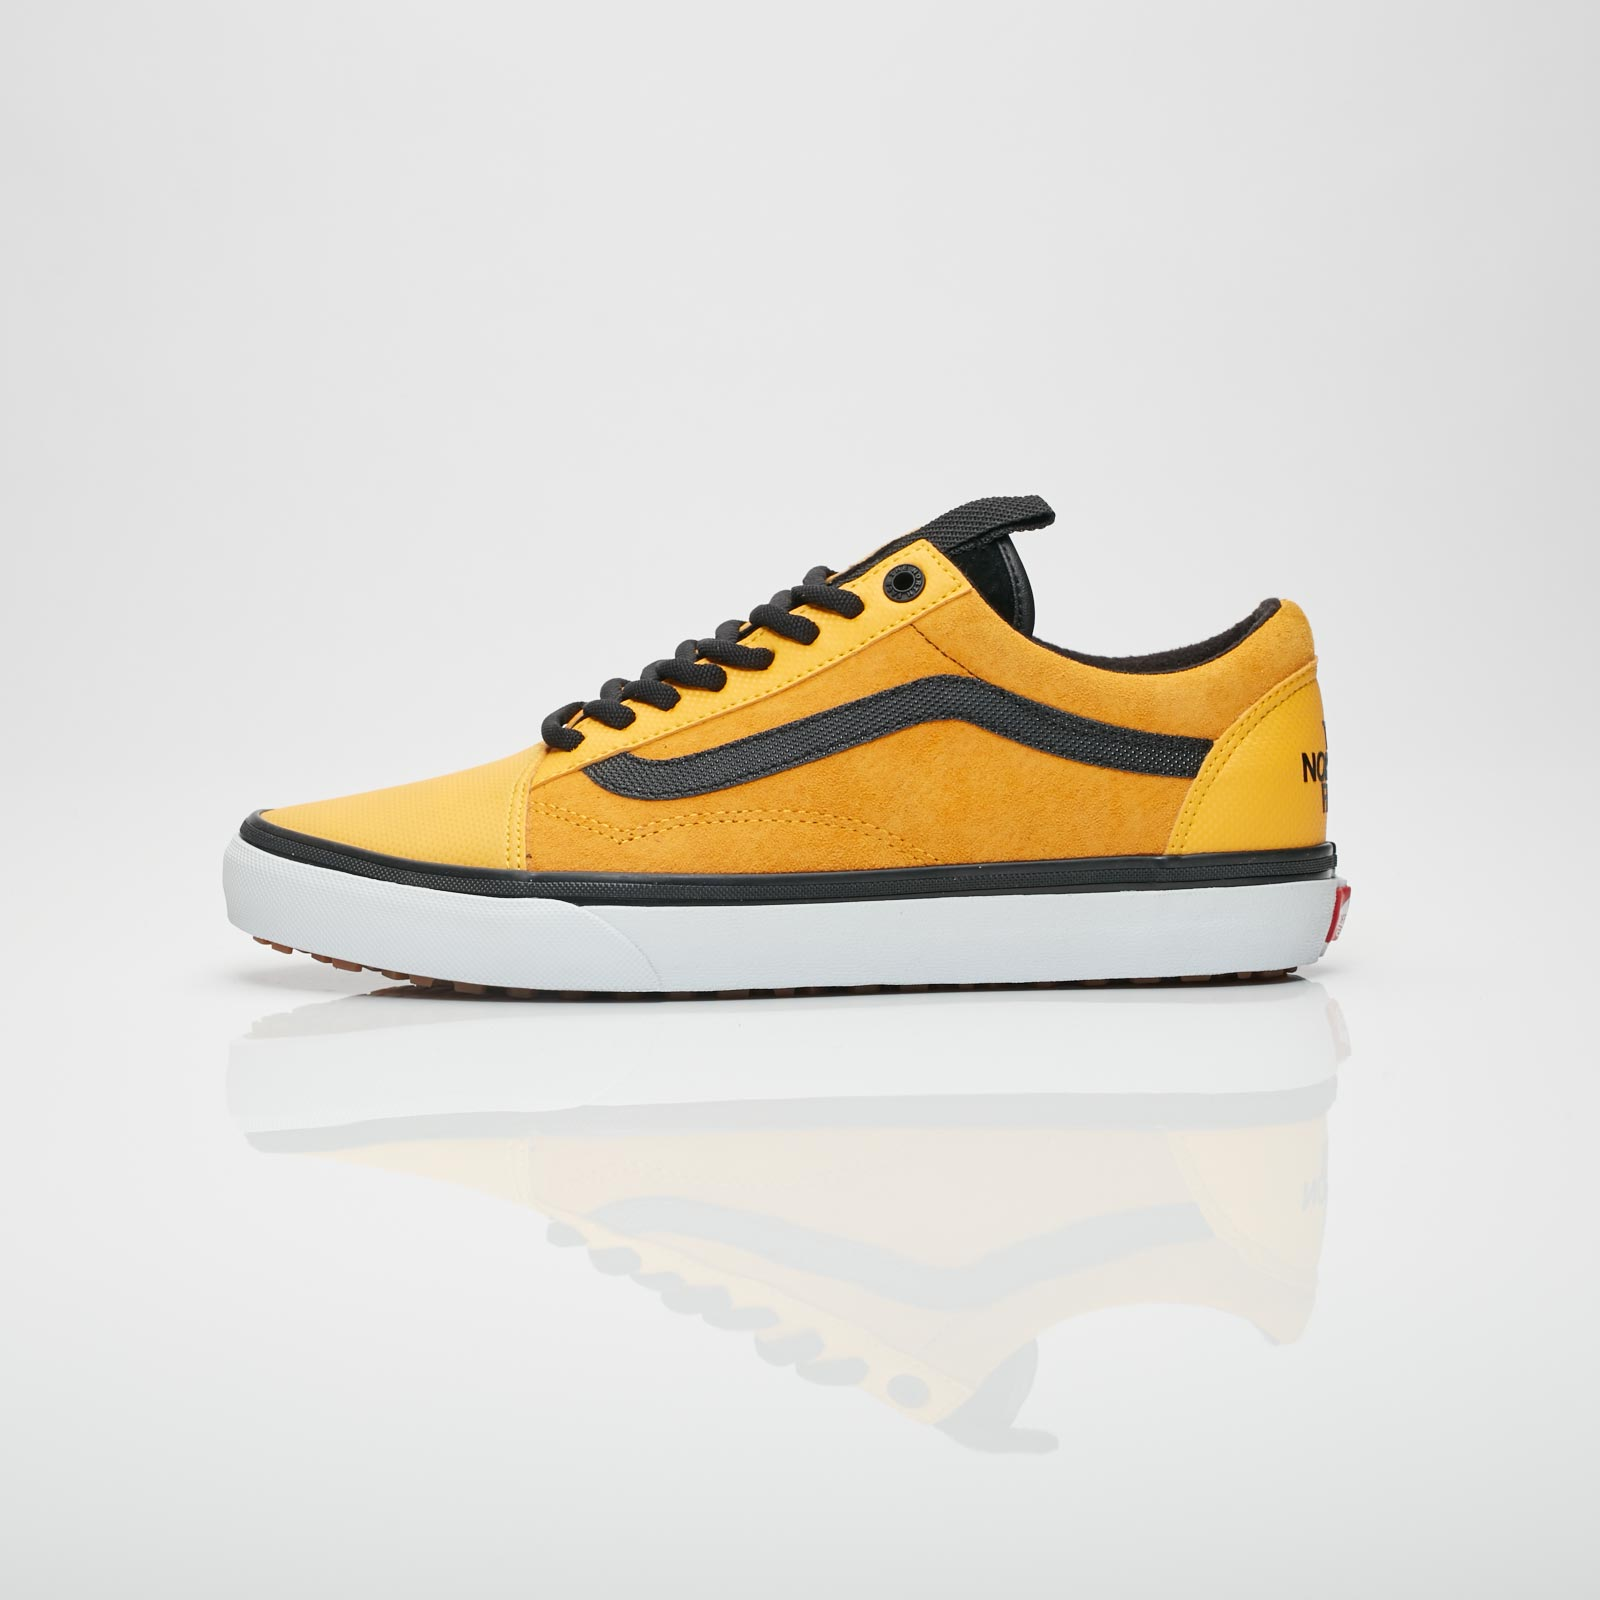 c1f988c22e6da4 Vans Old Skool MTE DX x The North Face - Vn0a348gqwi ...